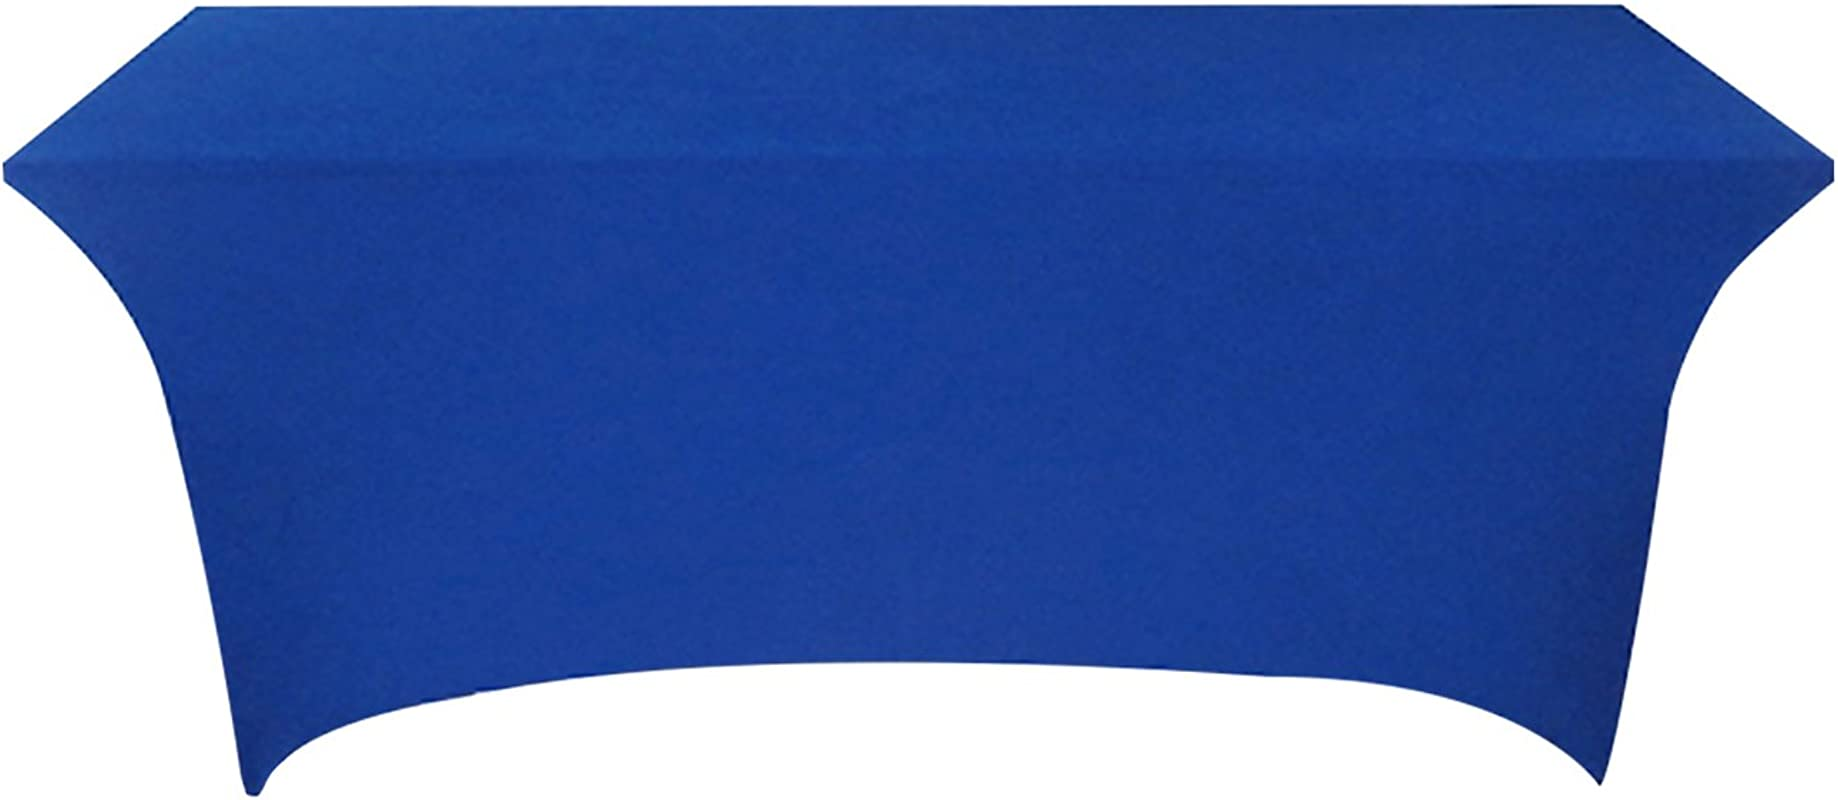 Tina 4 Ft Rectangular Banquet Table Cover Spandex Fitted Stretch Tablecloth Sapphire